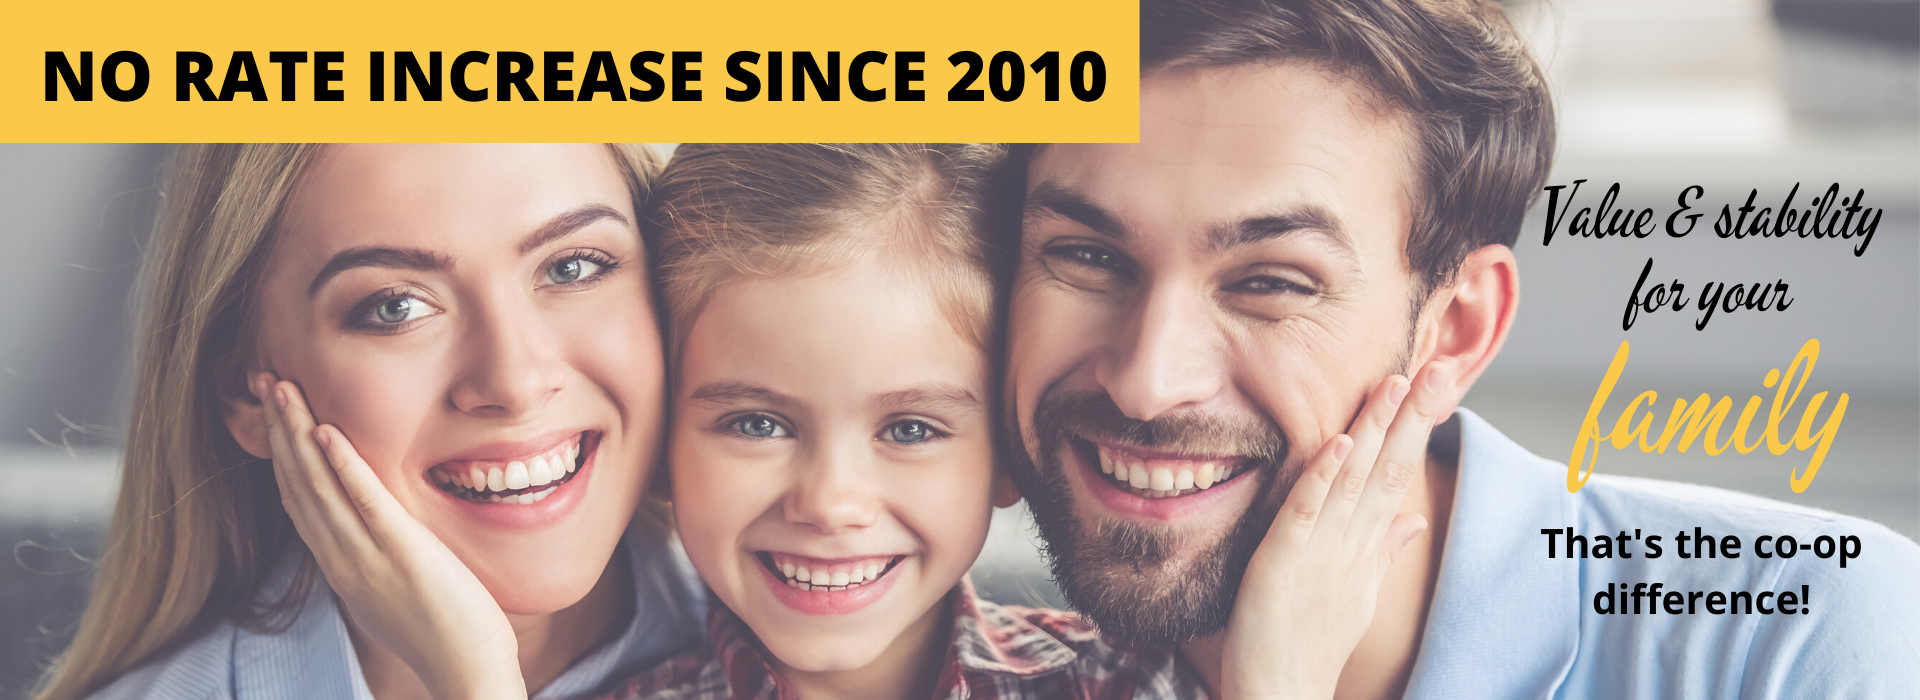 No rate increase since 2010 - that's value and stability for your family!